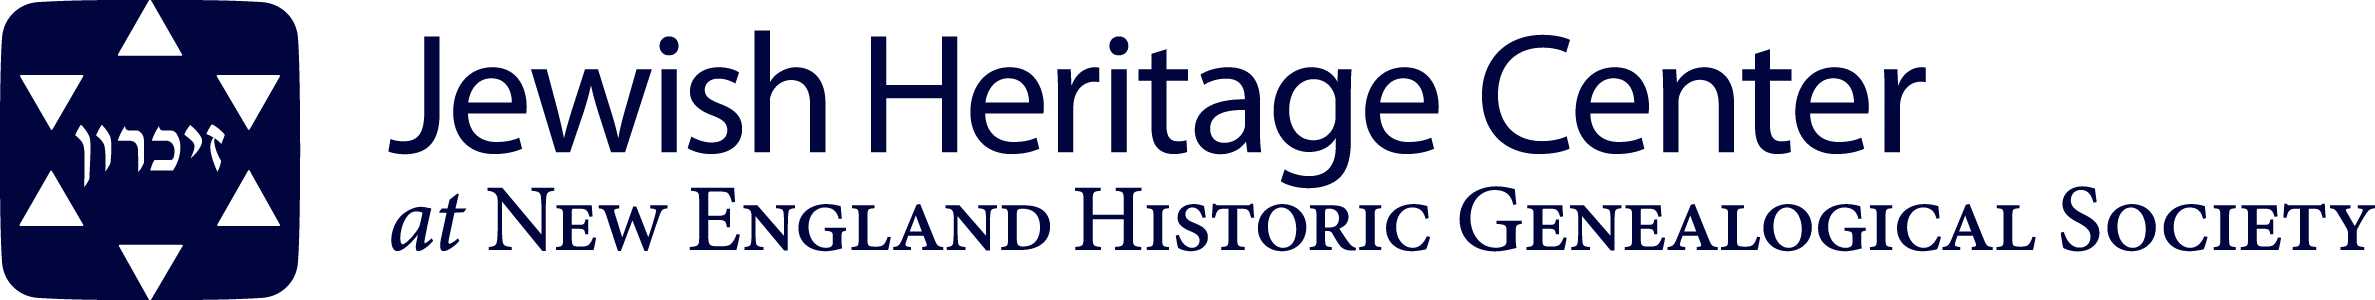 Jewish Heritage Center at New England Historic Genealogical Society